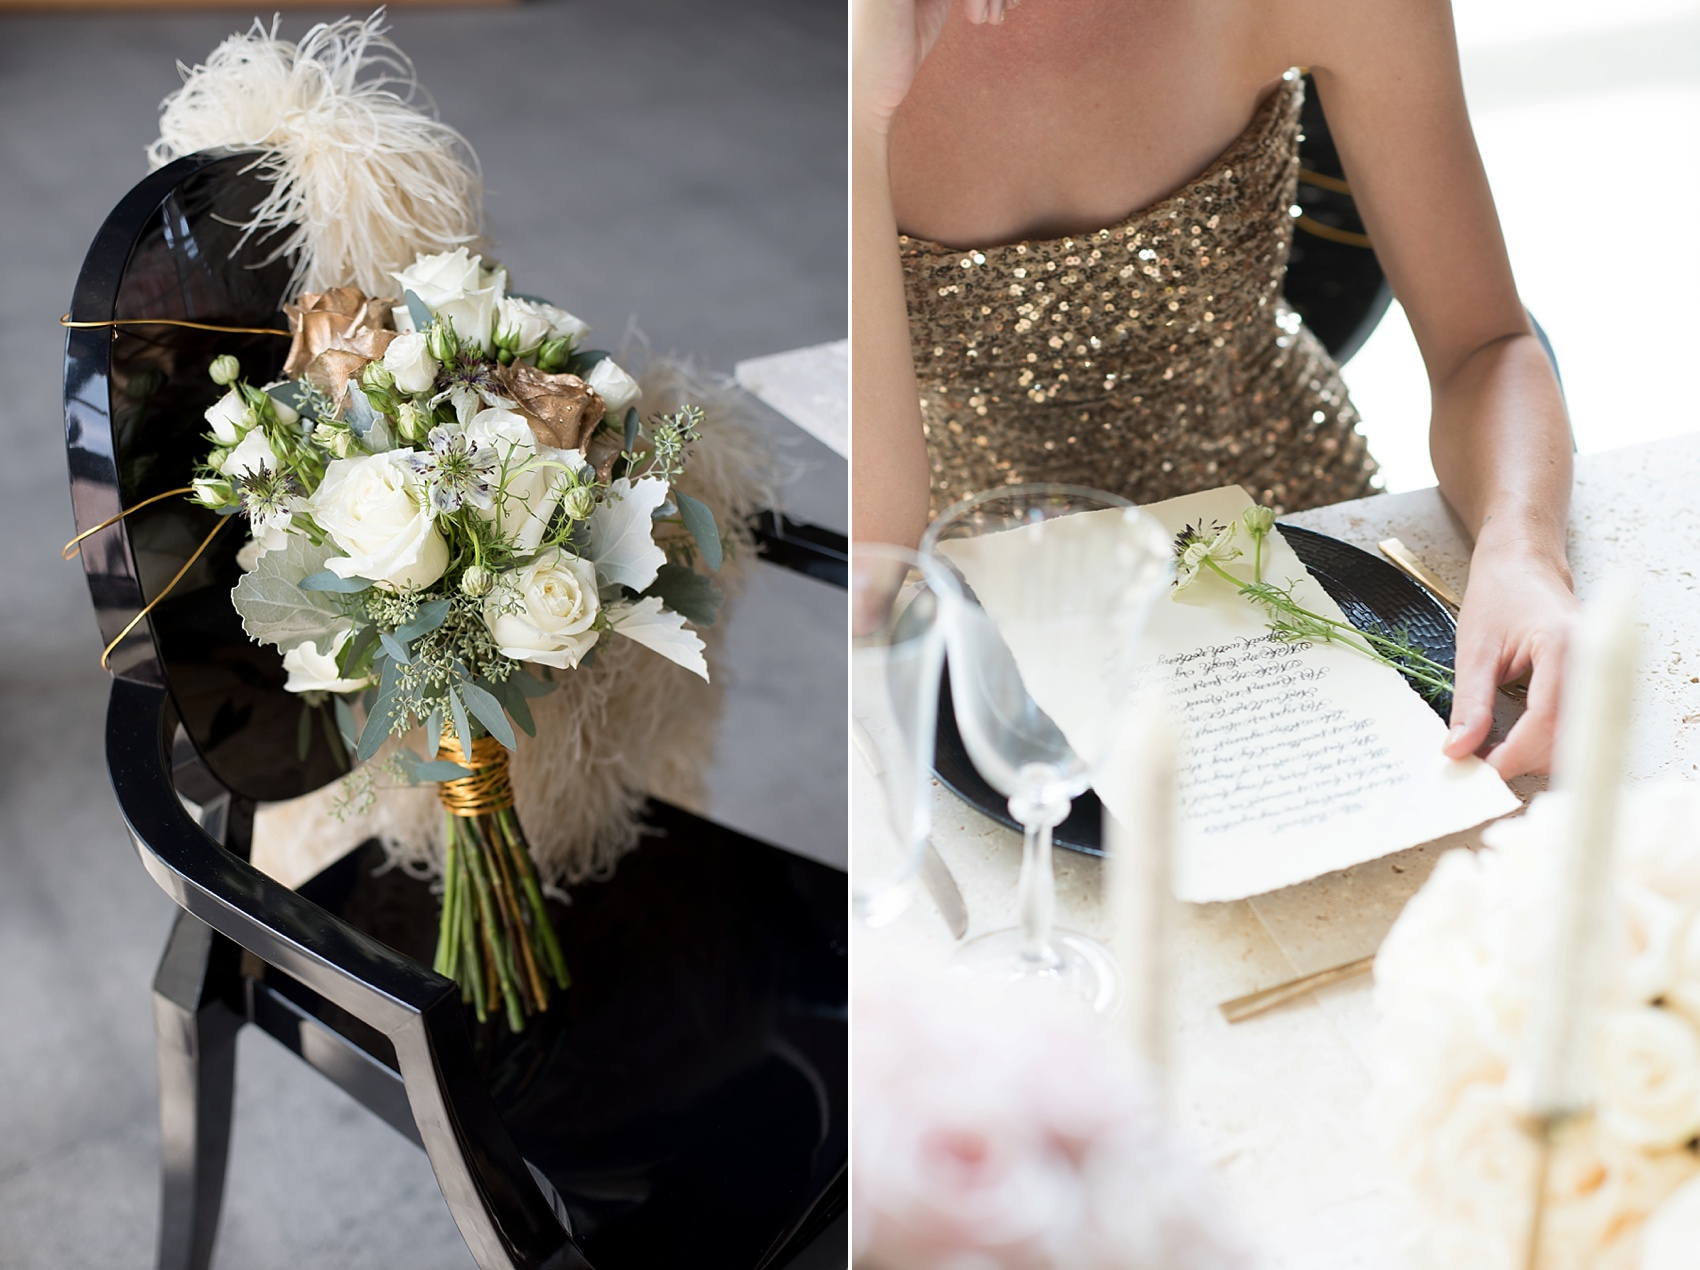 Destination wedding photographer Mikkel Paige captures a glamorous industrial bridal session in Hawaii with Burnett's Boards and Moana Events. Gold sequin gown from Rent the Runway and gold and white floral bouquet.